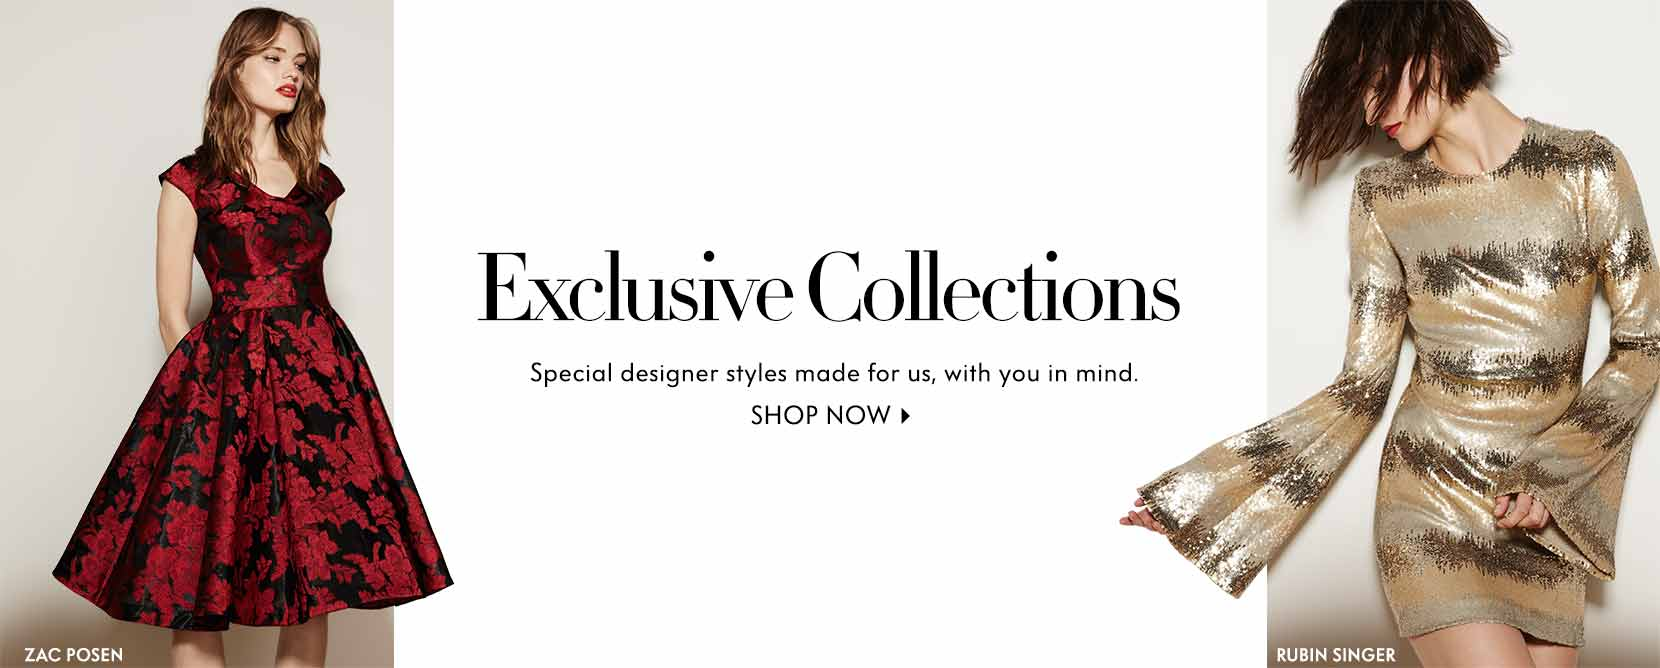 Exclusive Collections Special designer styles made for us, with you in mind. Shop now